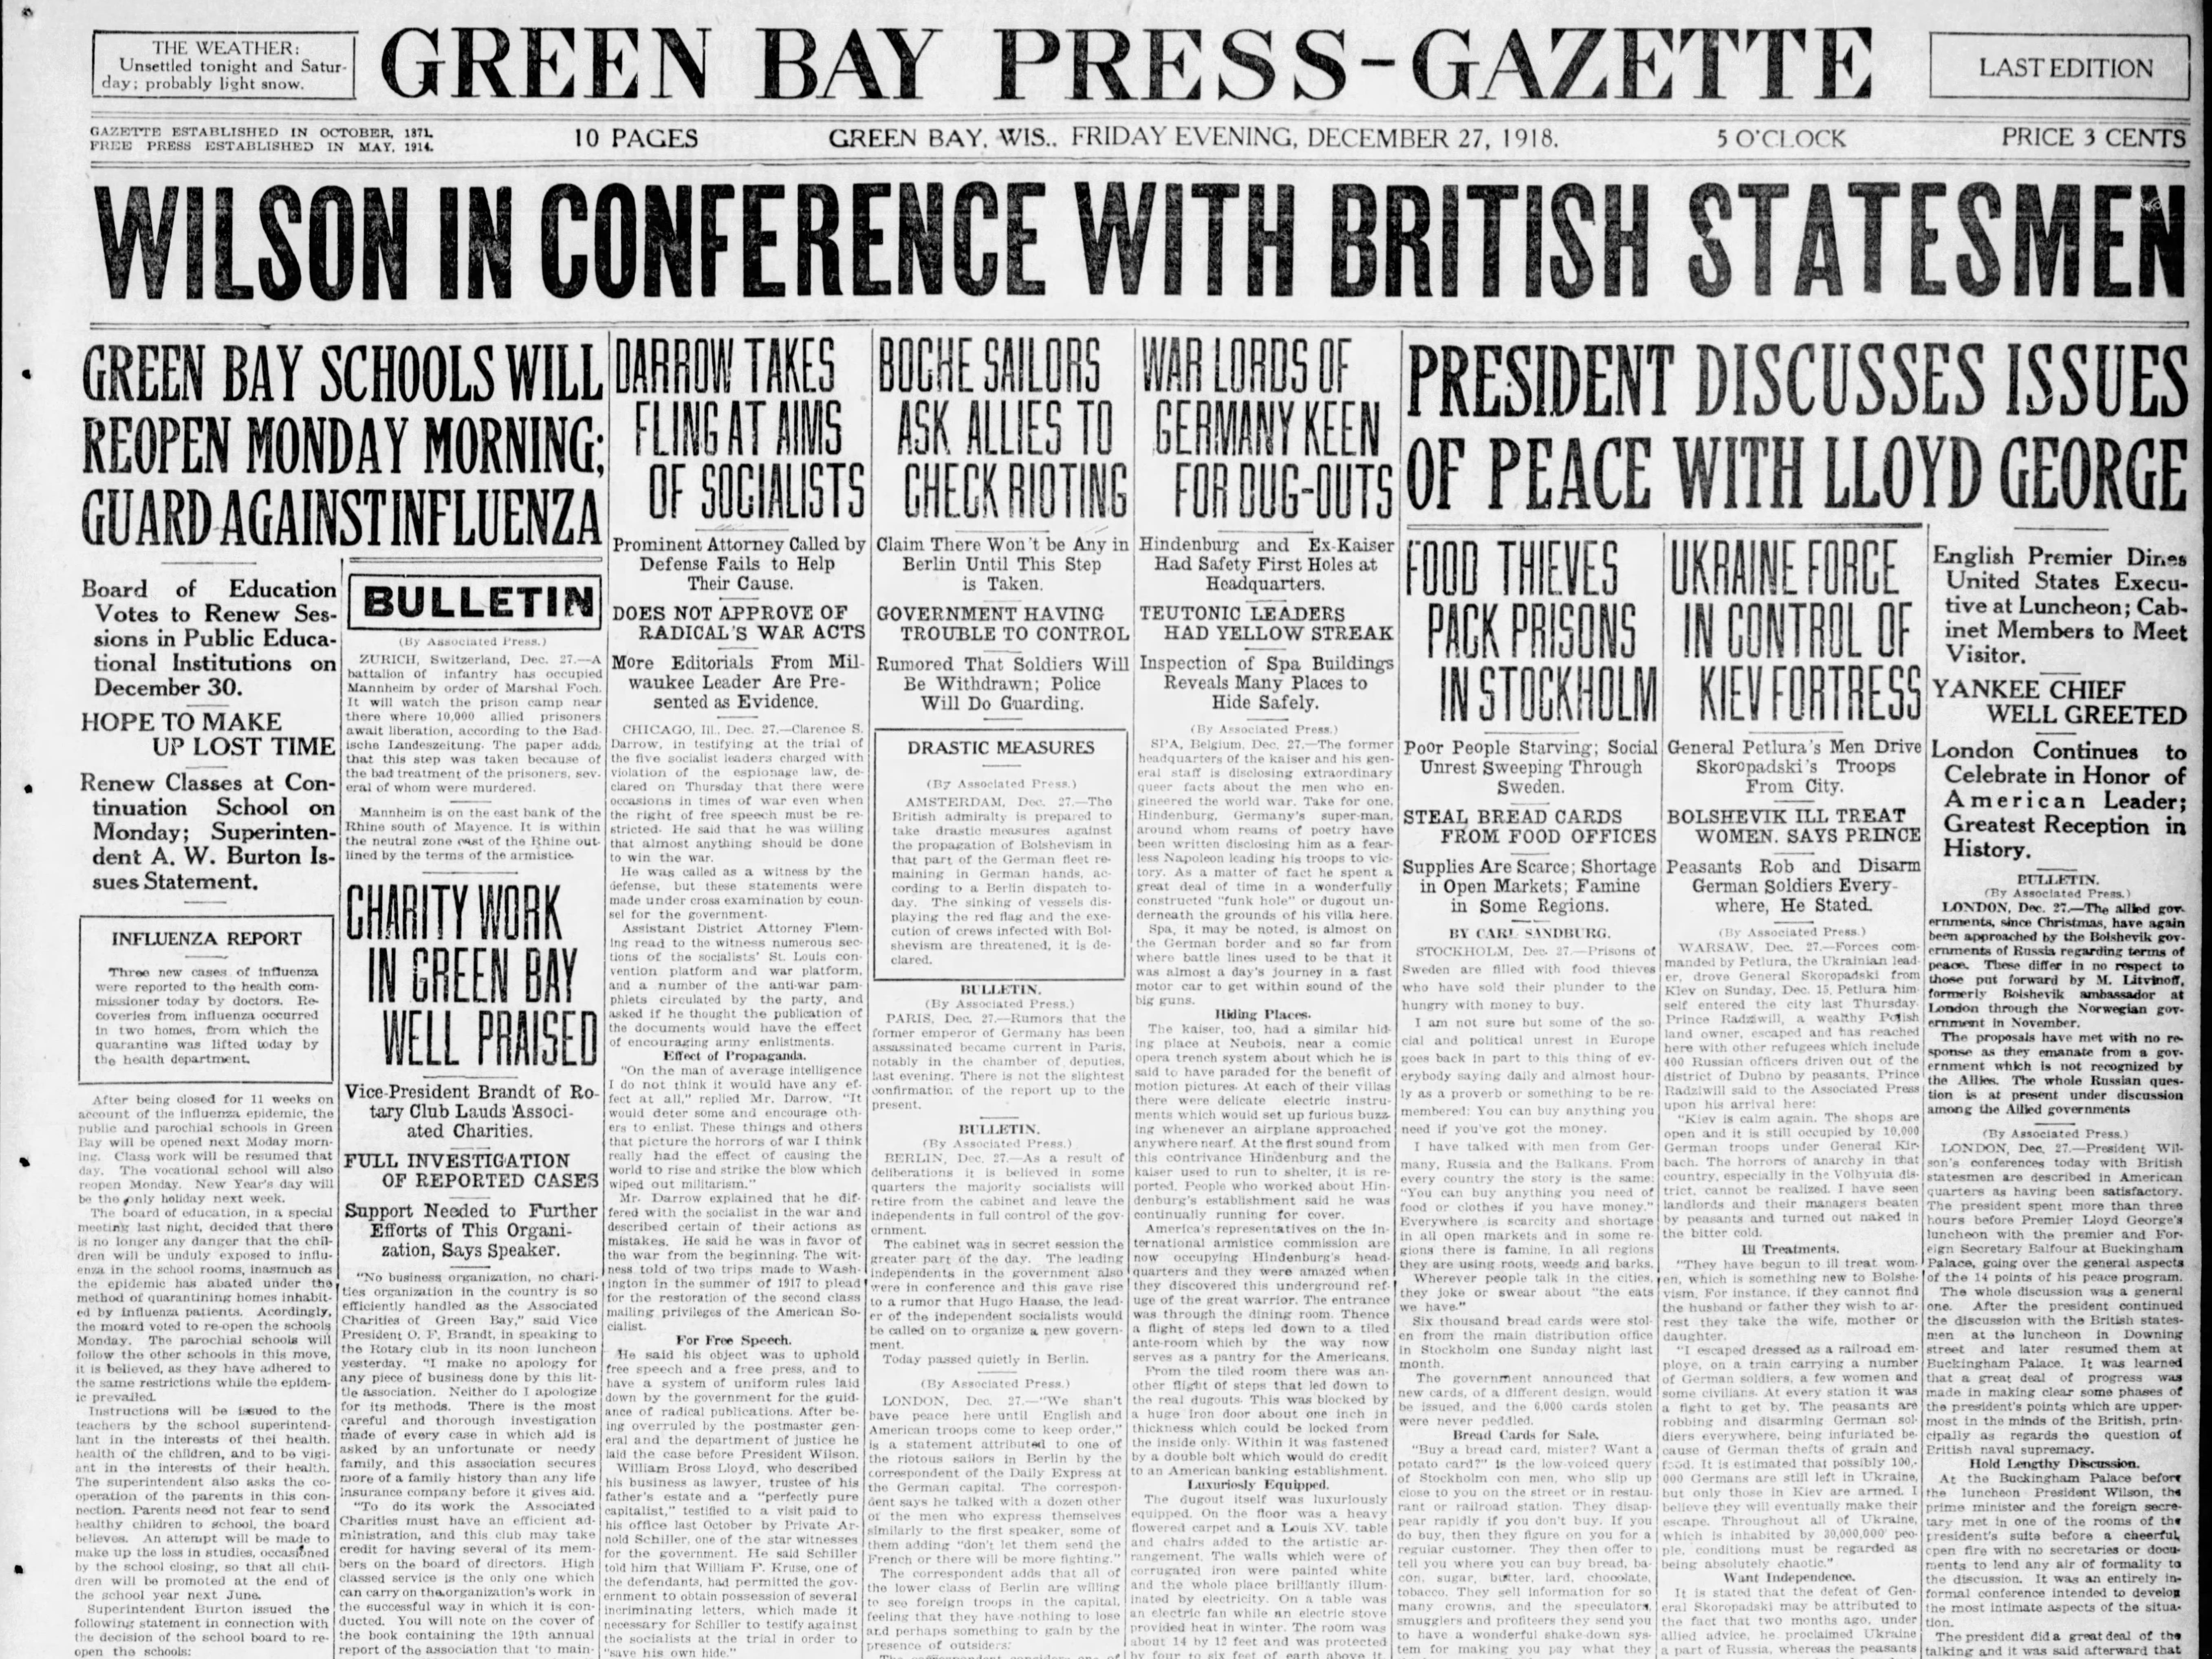 Today in History: Dec. 27, 1918